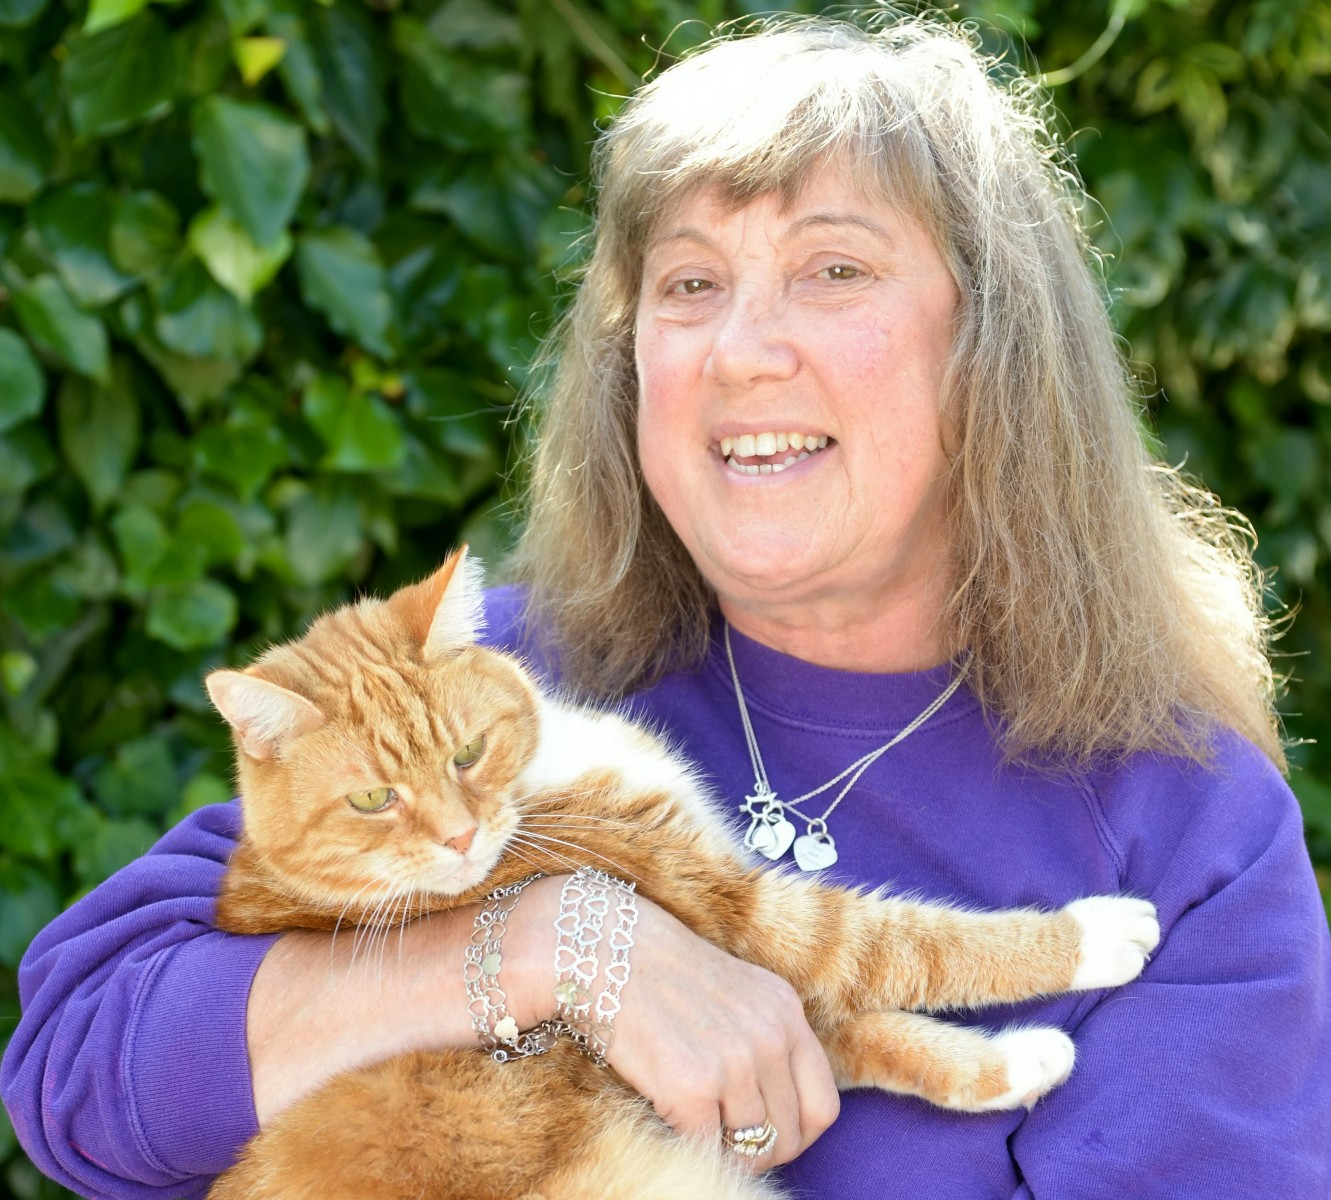 Woman opens sanctuary for GINGER cats claiming they're more vulnerable to abuse